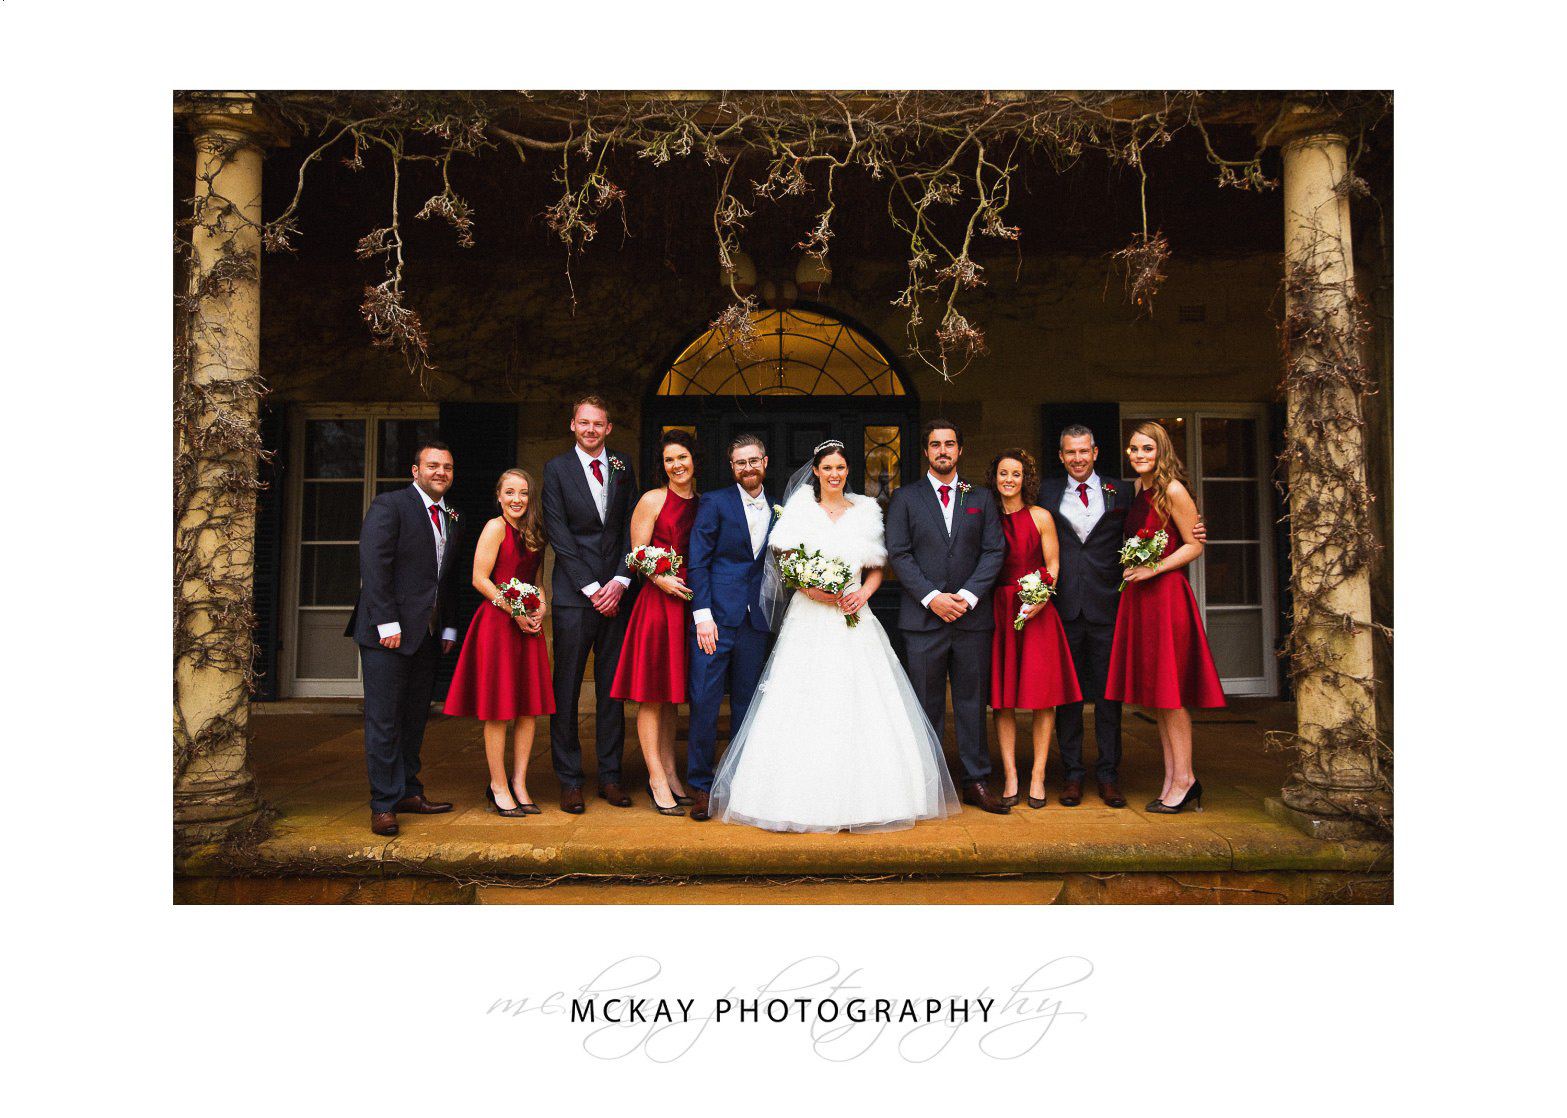 Bridal party photo at the old Bendooley Homestead